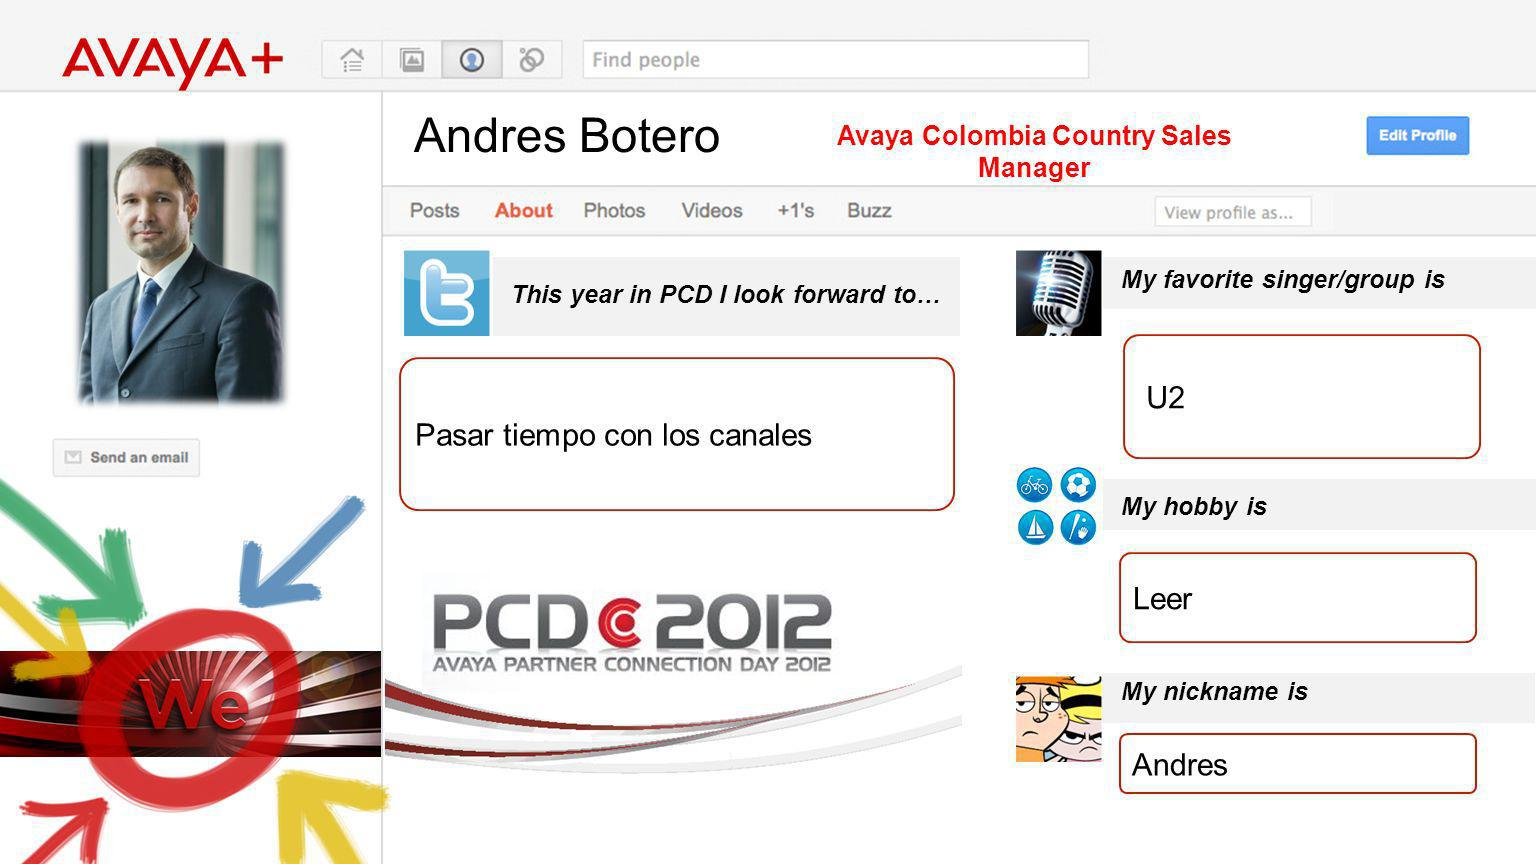 Andres Botero This year in PCD I look forward to… Avaya Colombia Country Sales Manager Pasar tiempo con los canales My favorite singer/group is My hobby is My nickname is U2 Leer Andres